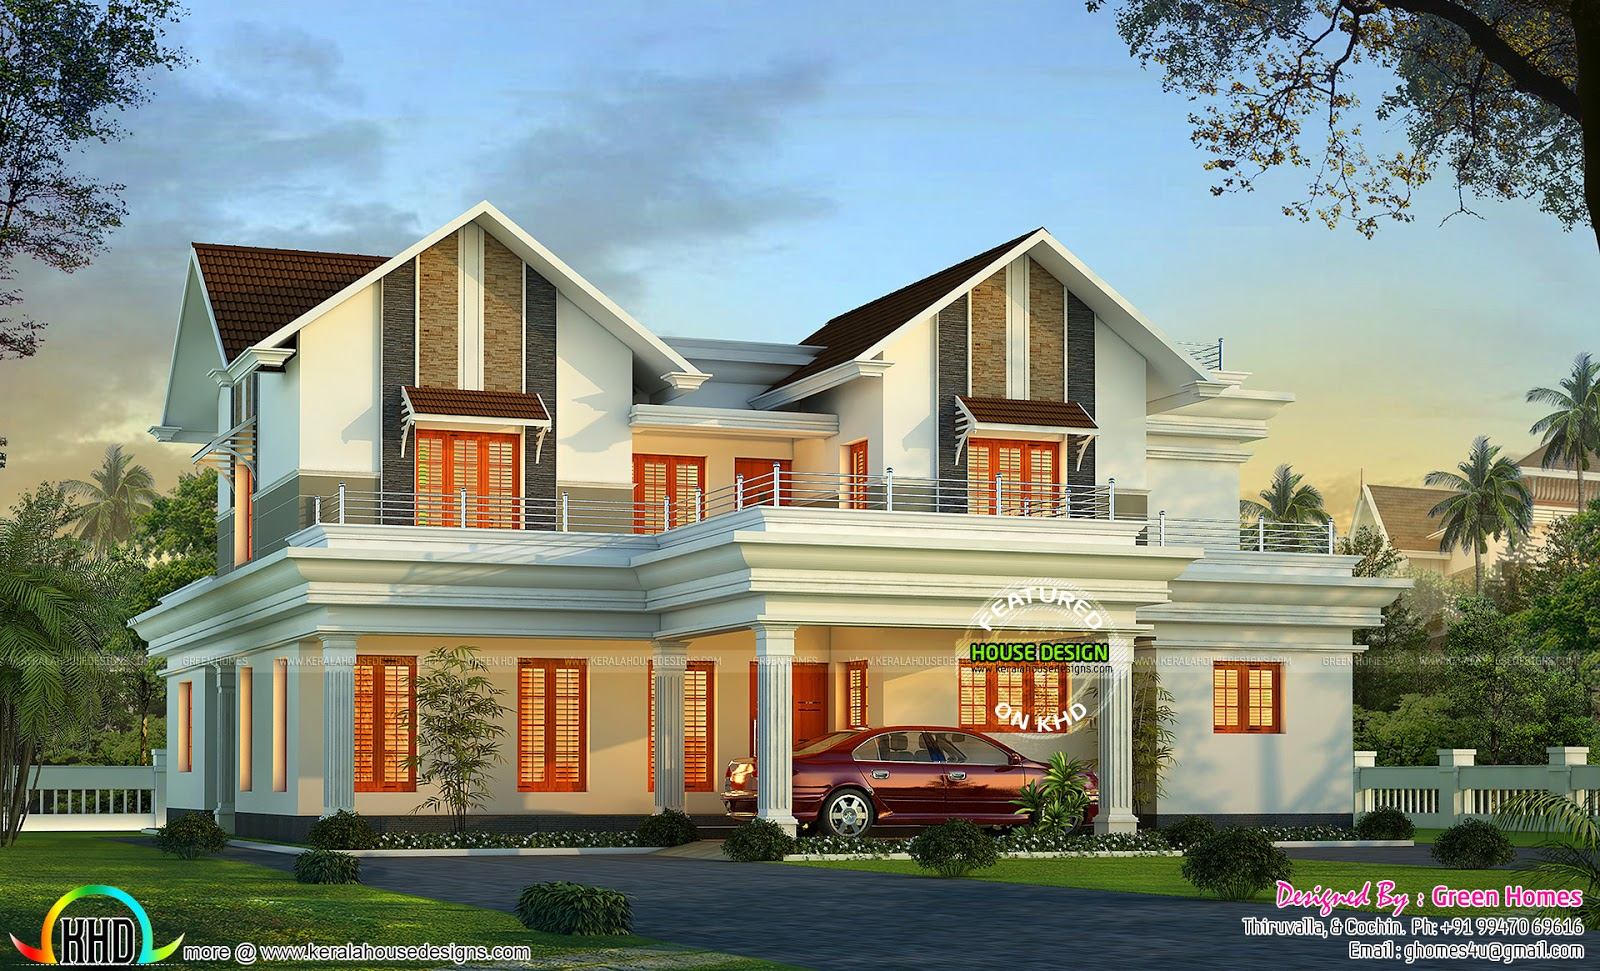 Home dream house kerala home design and floor plans for Dream house plans